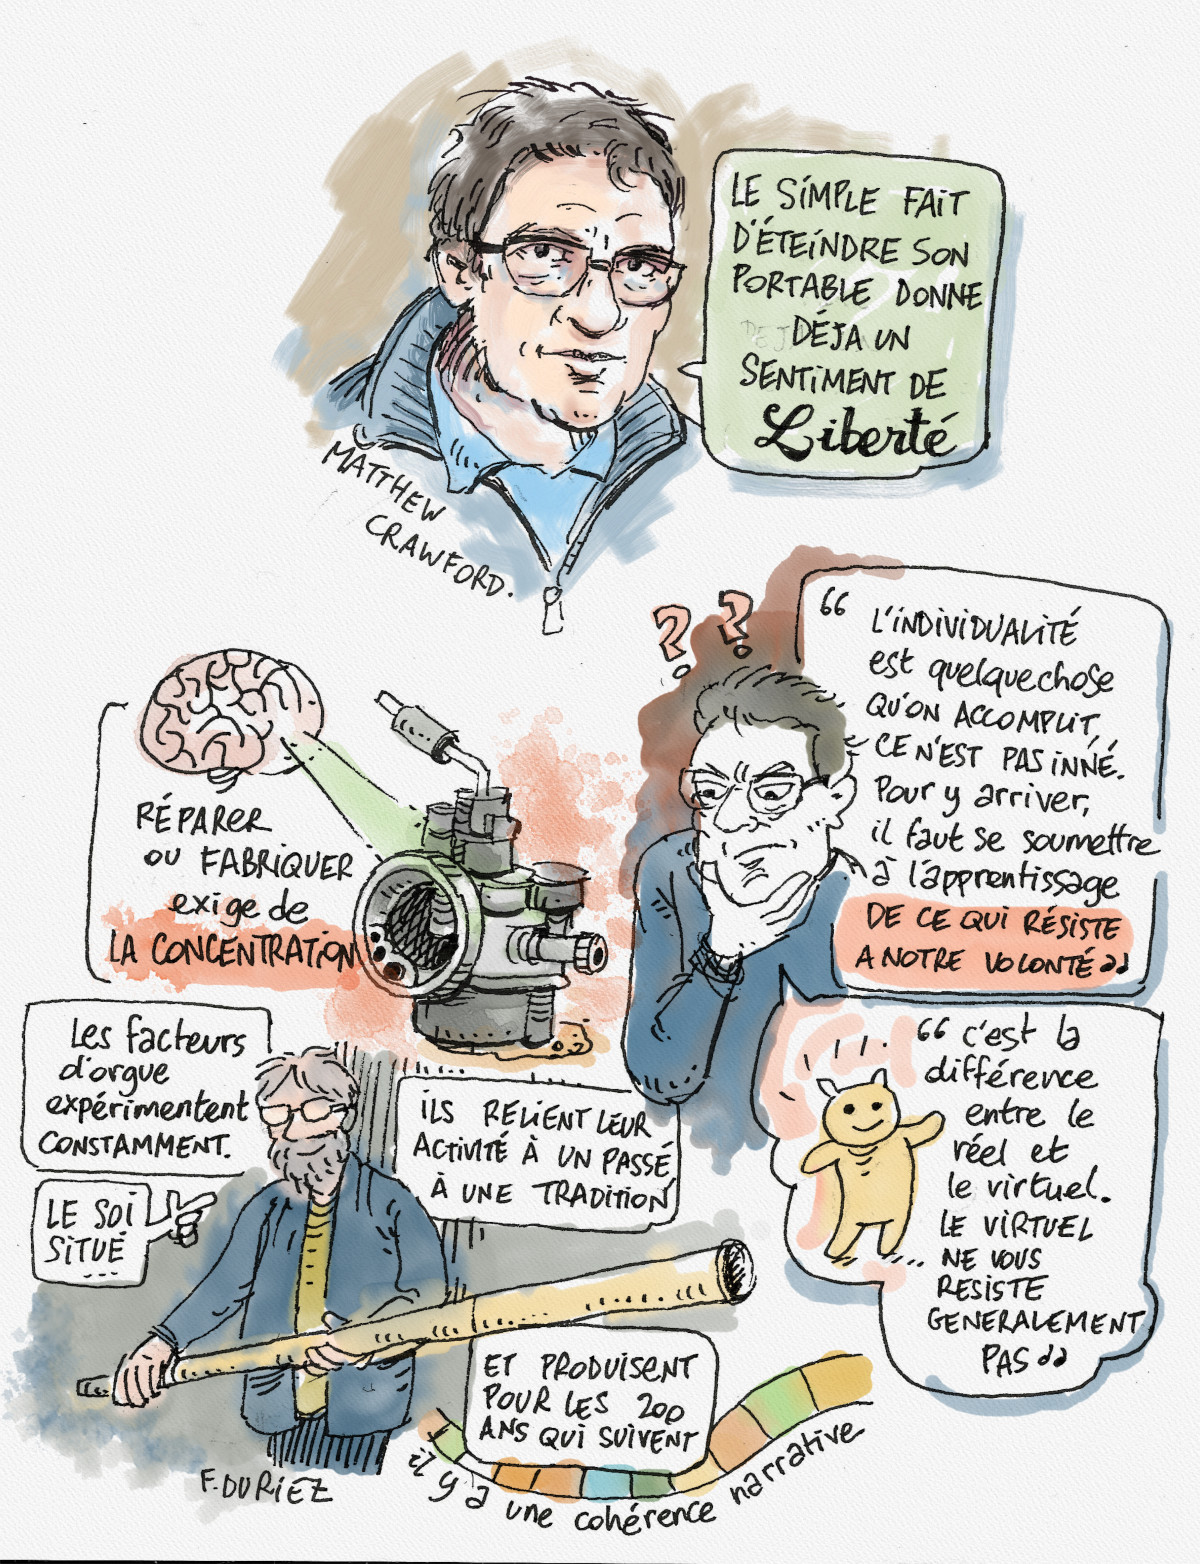 Matthew Crawford - le carburateur comme solution !